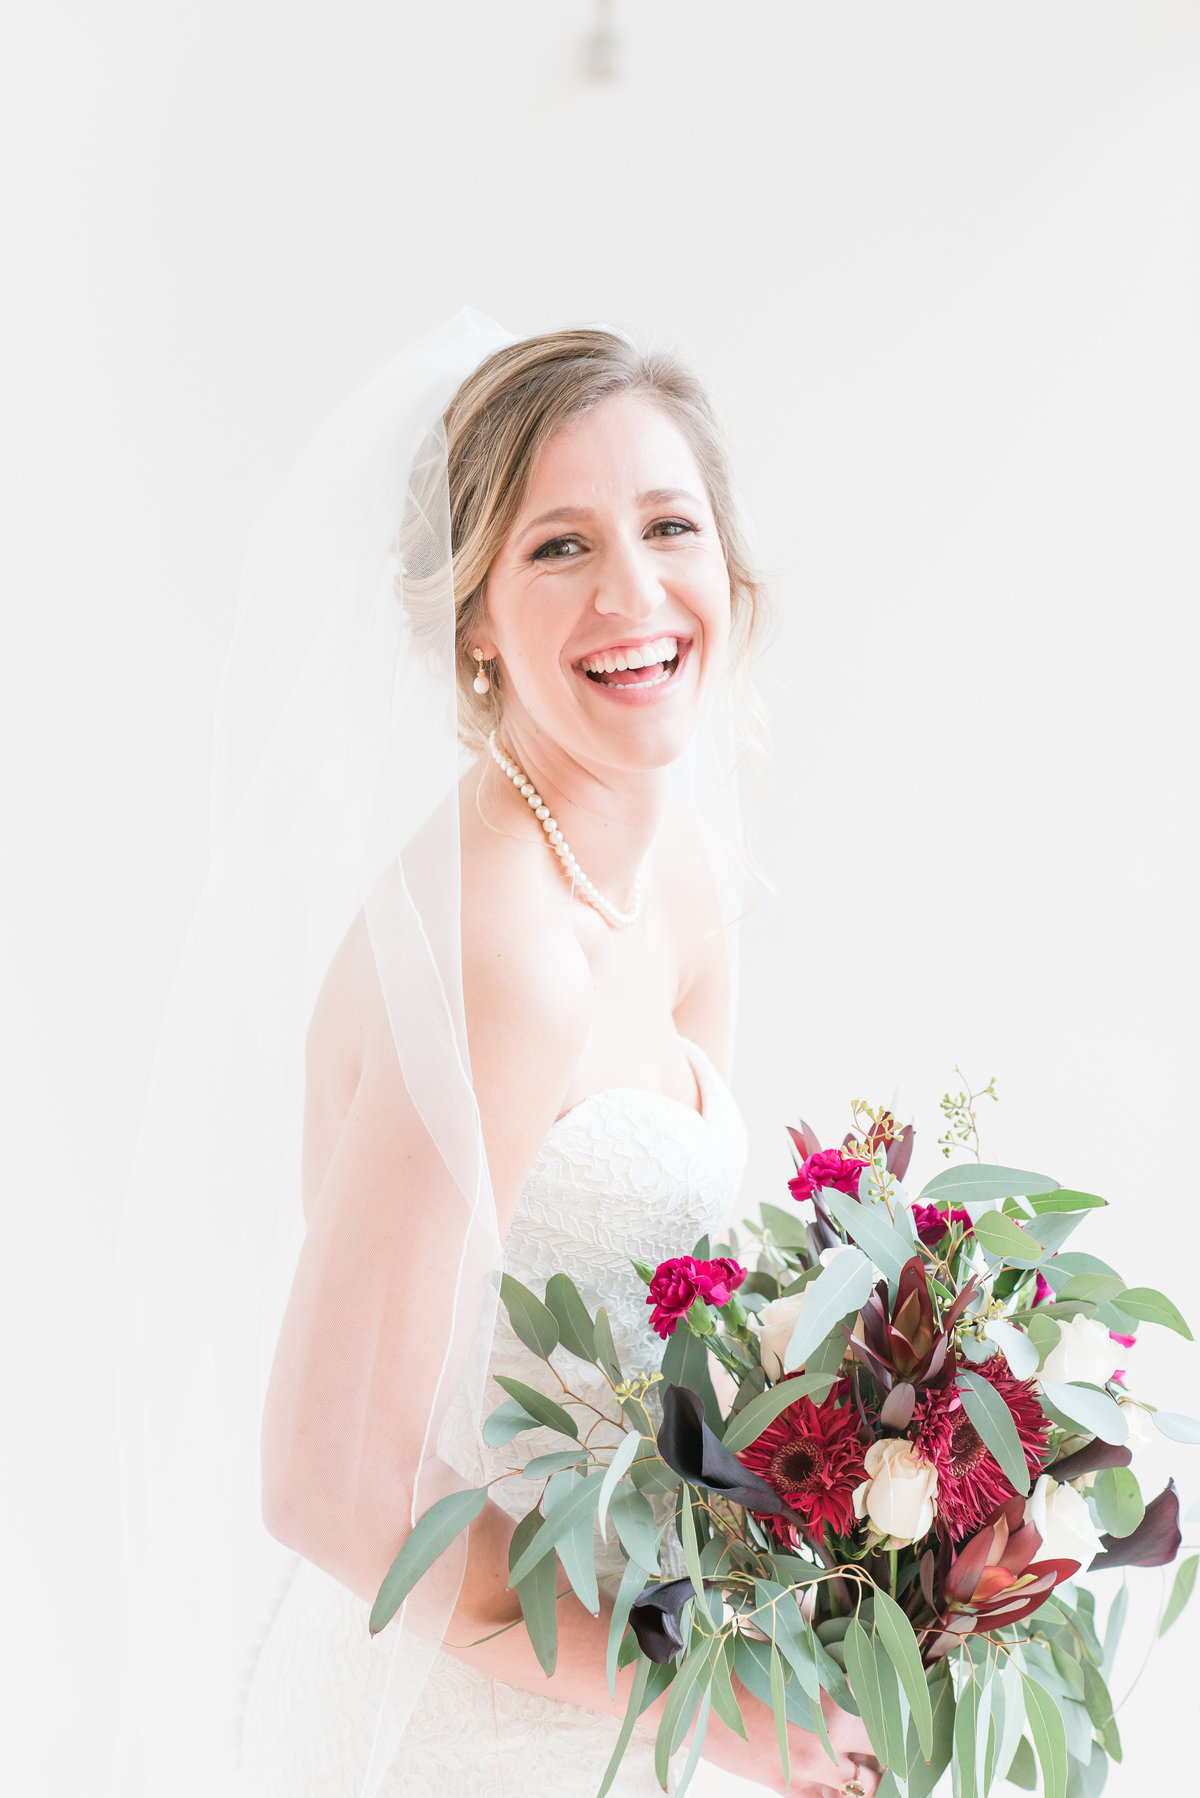 A bride wearing a strapless dress with cathedral length veil holding red and green wedding bouquet in front of a white wall smiling at the camera at the Glass Box at 230 in Raleigh